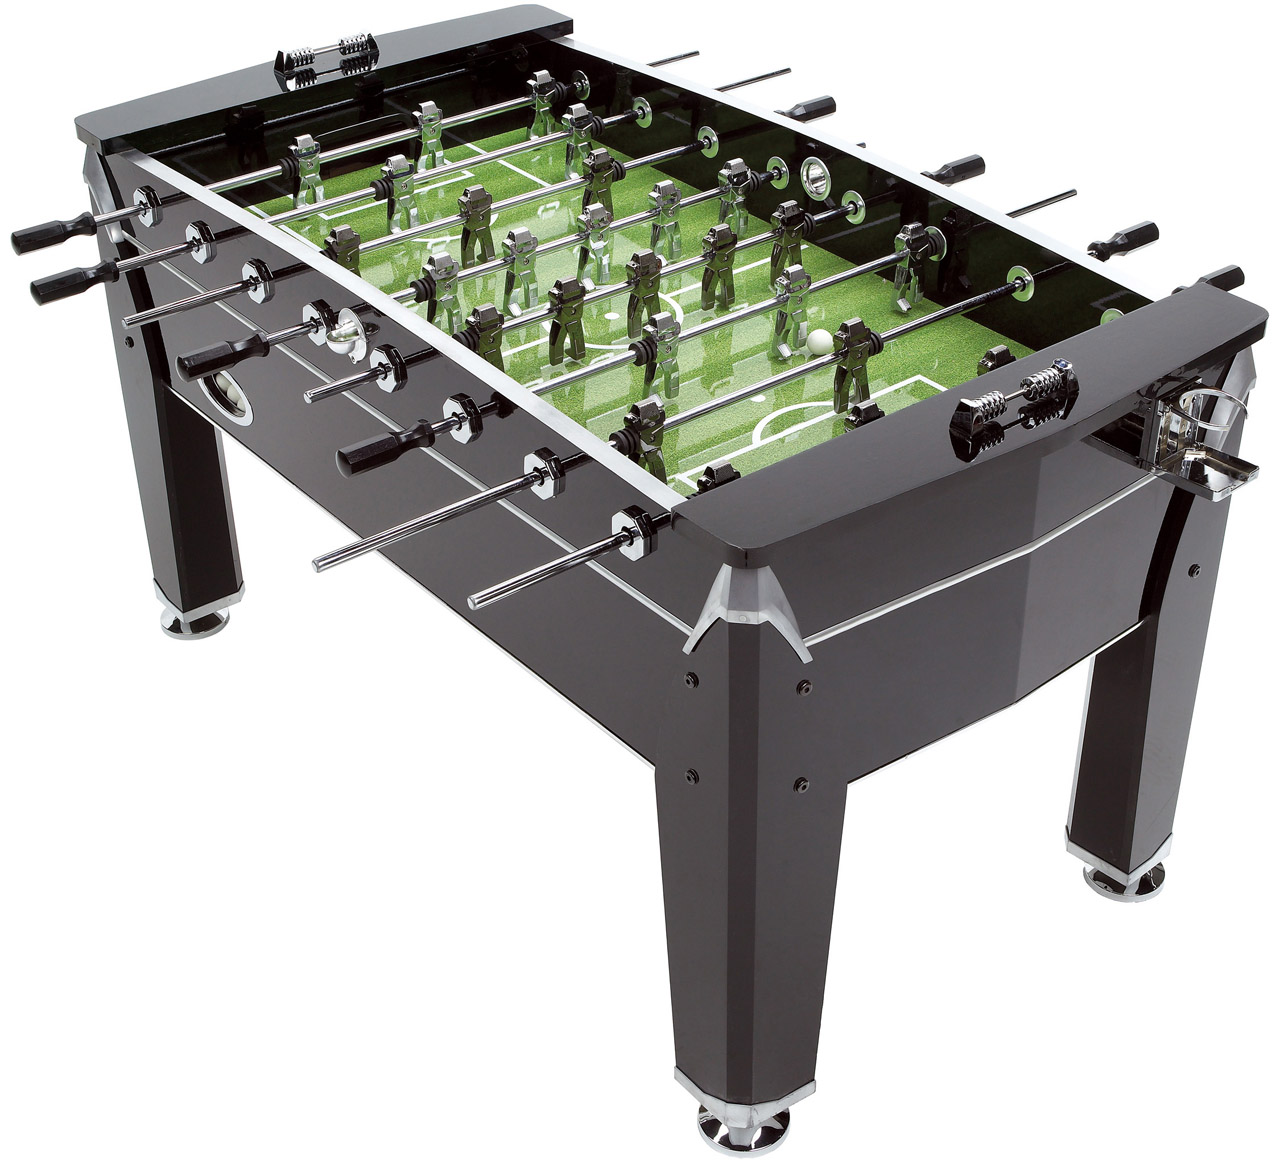 VIPER Football Table Snooker amp Pool Table Company Ltd : 1181 from www.snookerandpooltablecompany.com size 1276 x 1164 jpeg 320kB